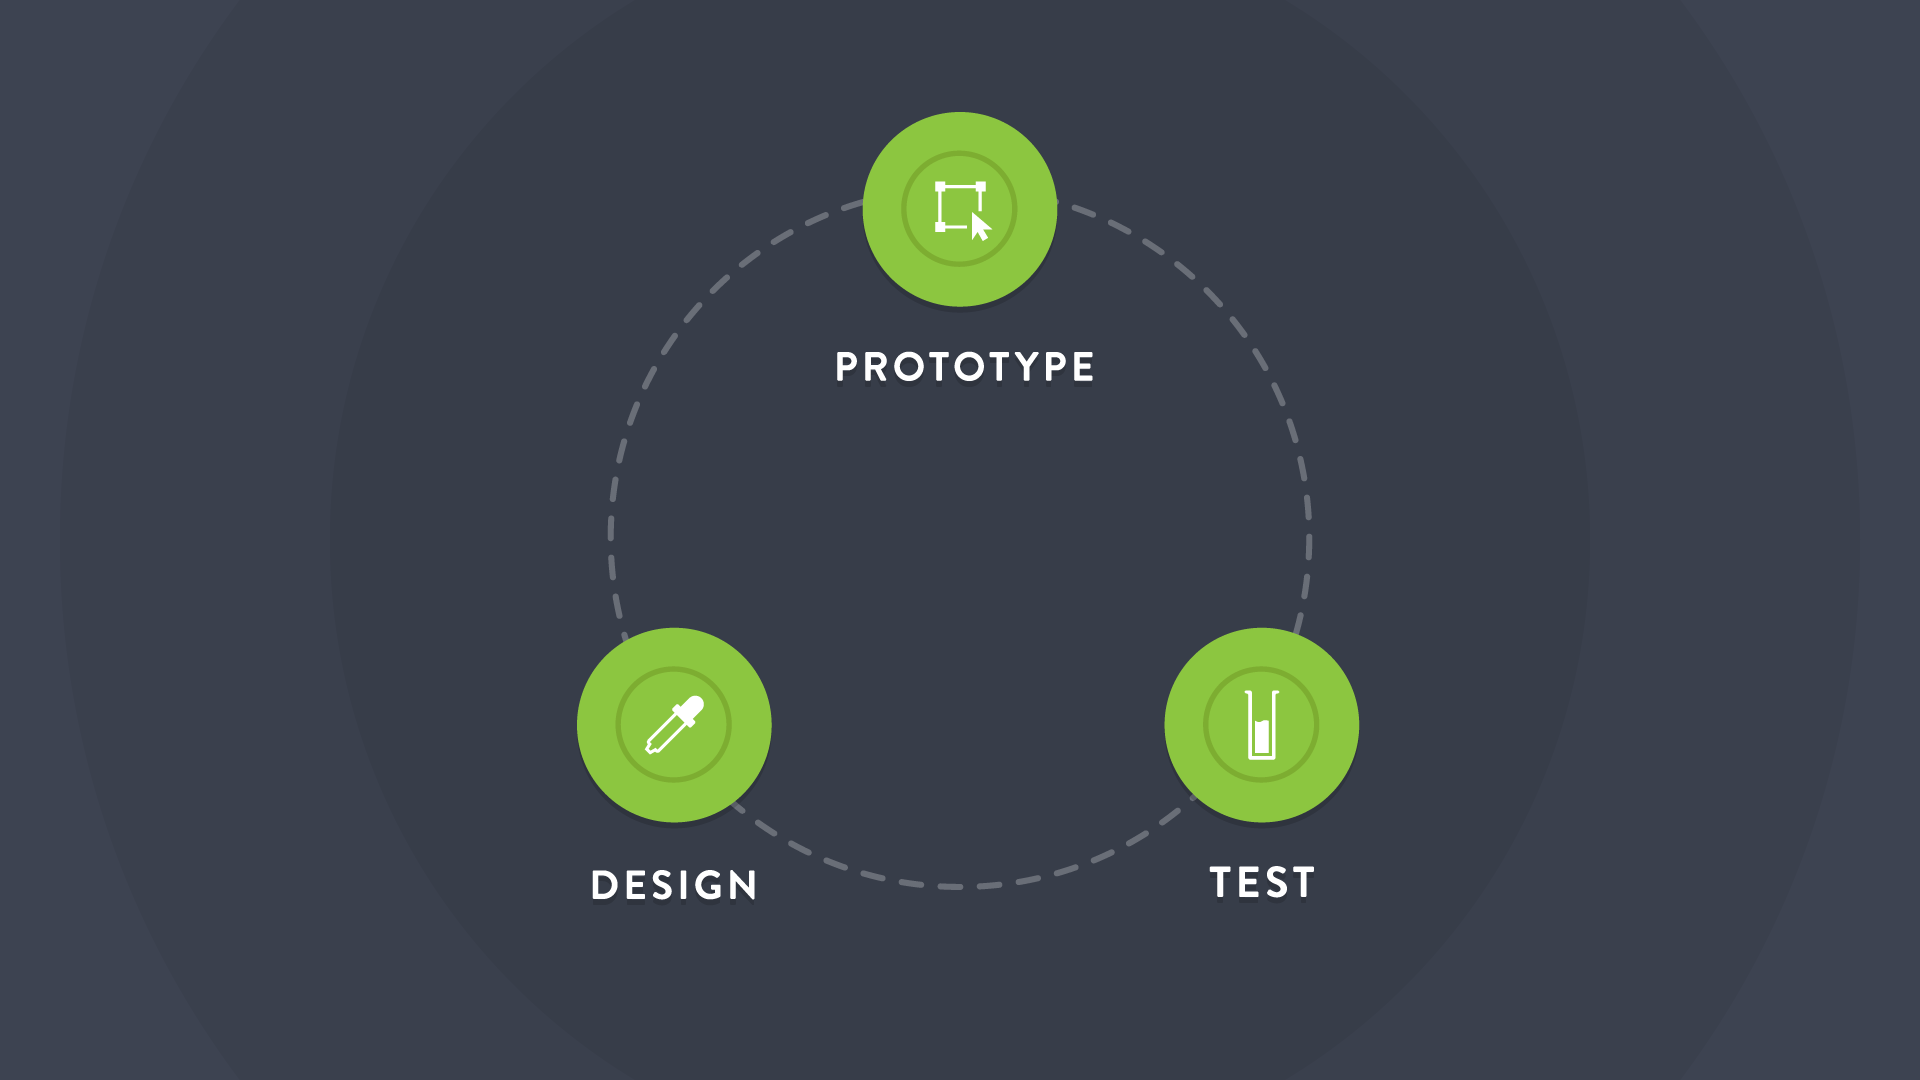 Iterative design process.